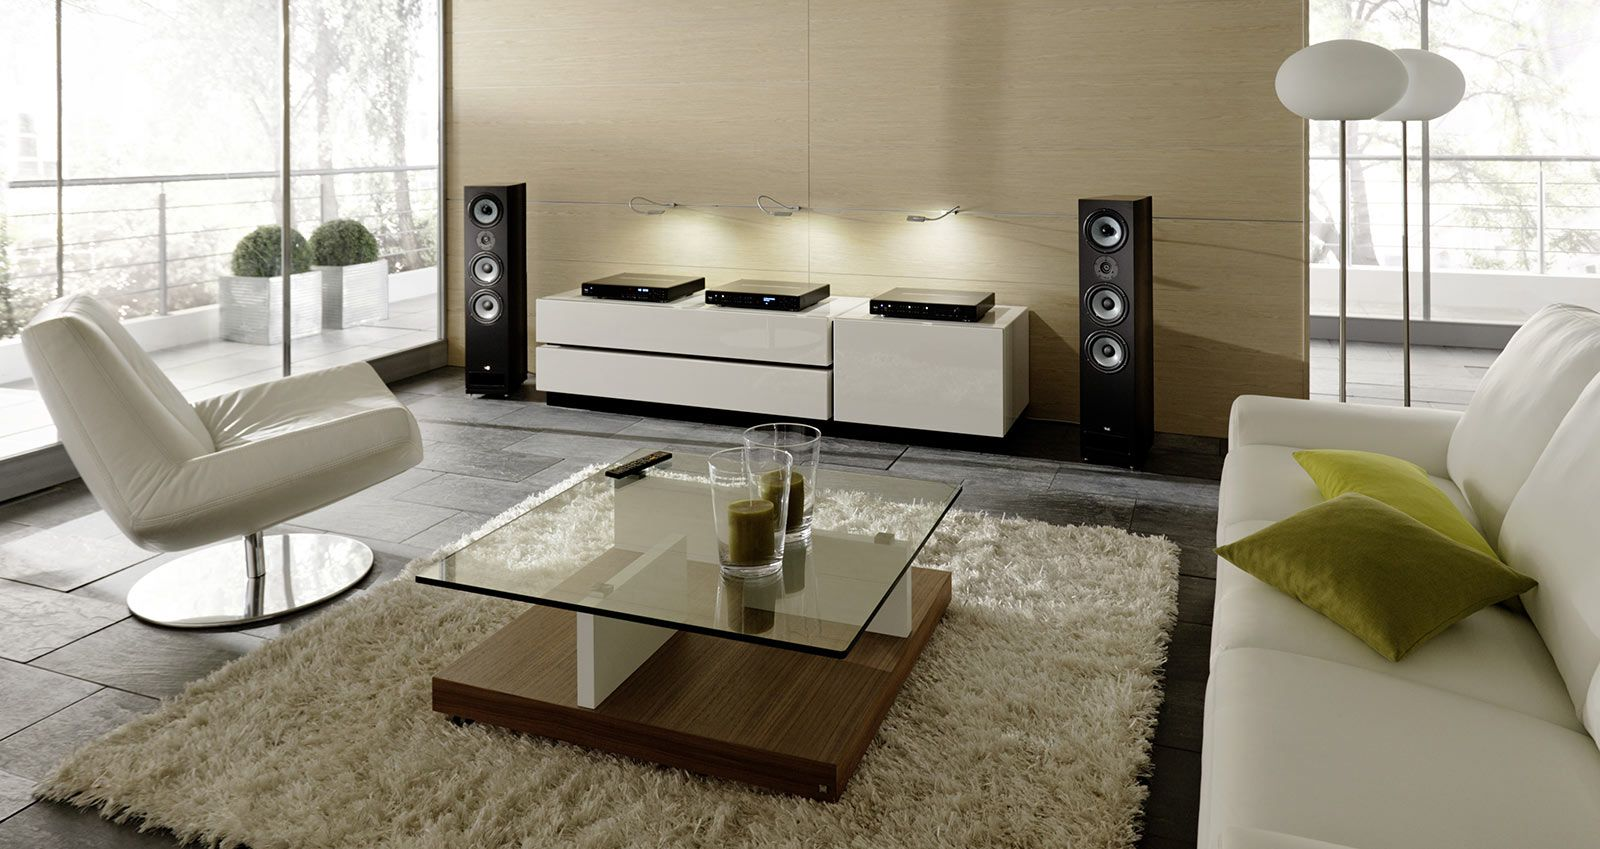 Beau Music Listening Room Design | Home Audio Design Completes Sound Perception